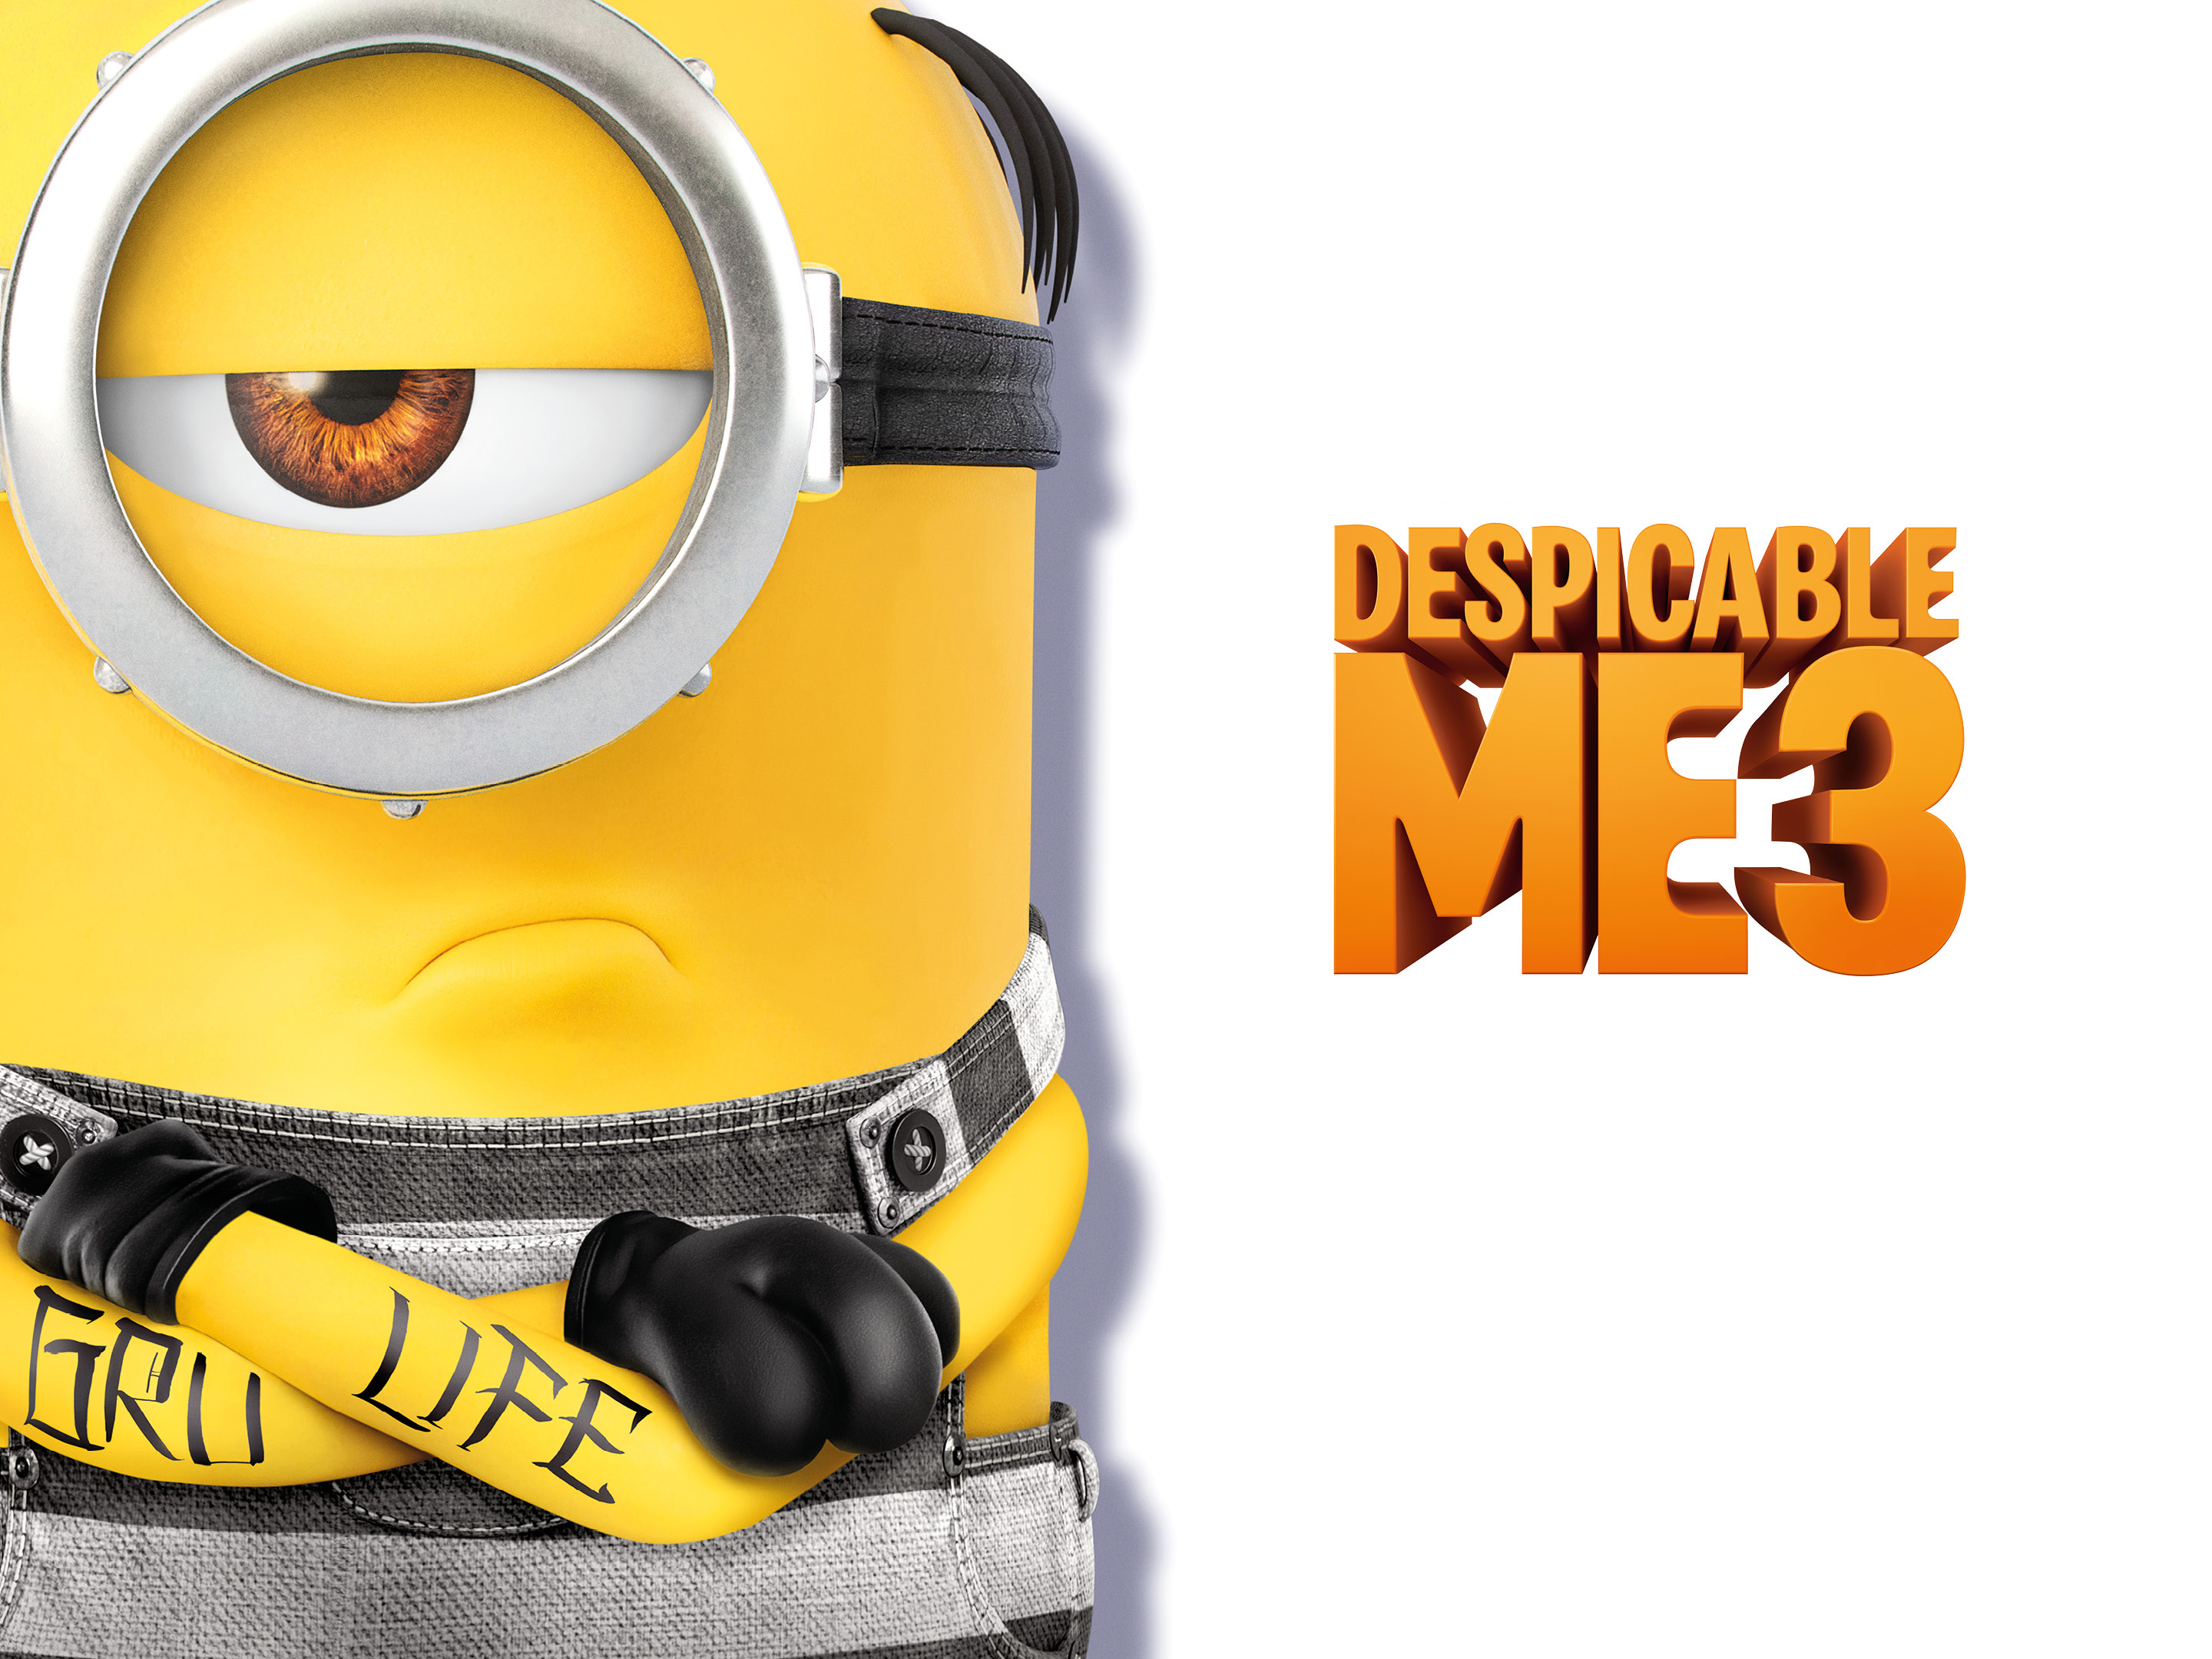 Minion Despicable Me 3 Hd Movies 4k Wallpapers Images